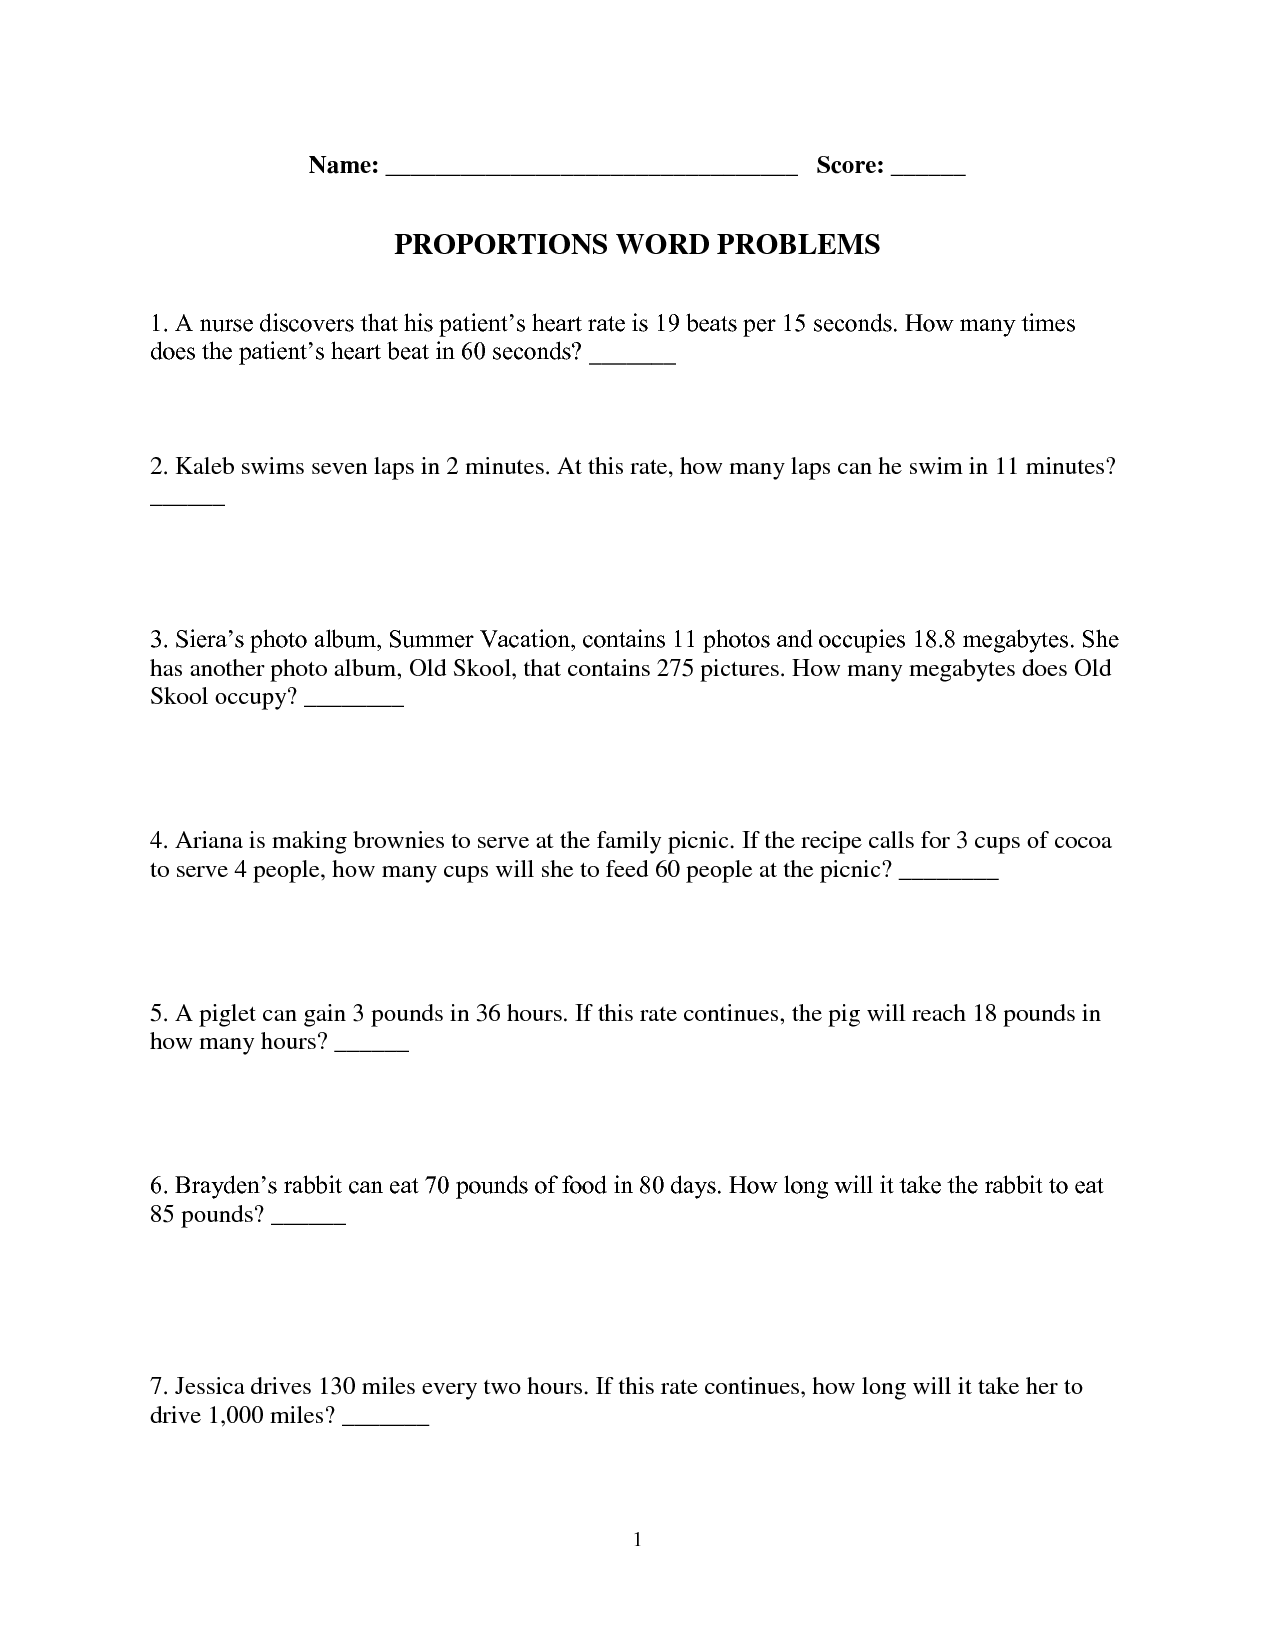 10 Best Images Of Proportion Problems Worksheet